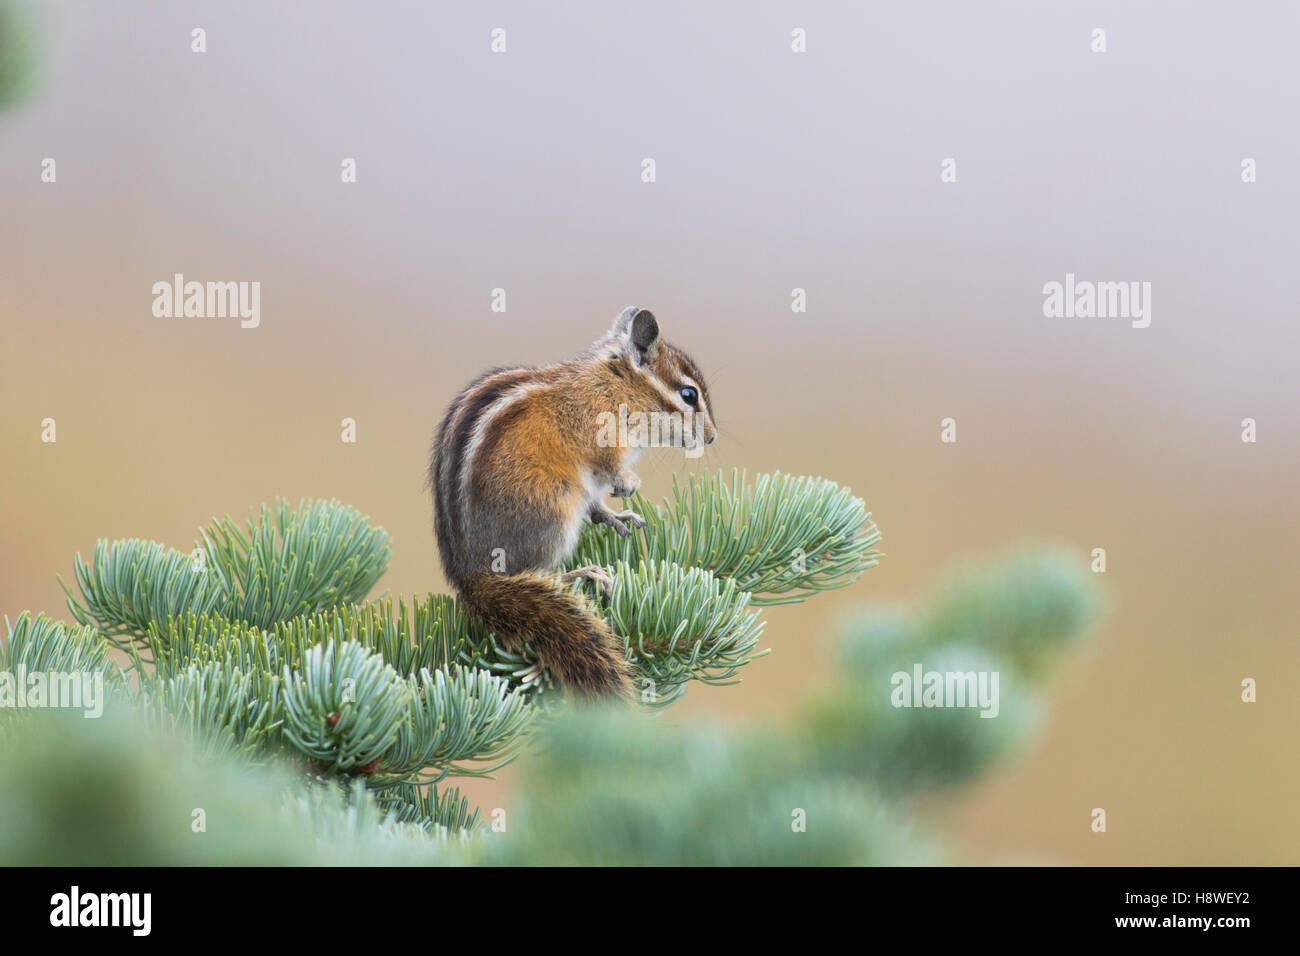 Olympic Chipmunk (Tamias amoenus caurinus) on a fir tree in Olympic National Park, Washington State, USA - Stock Image